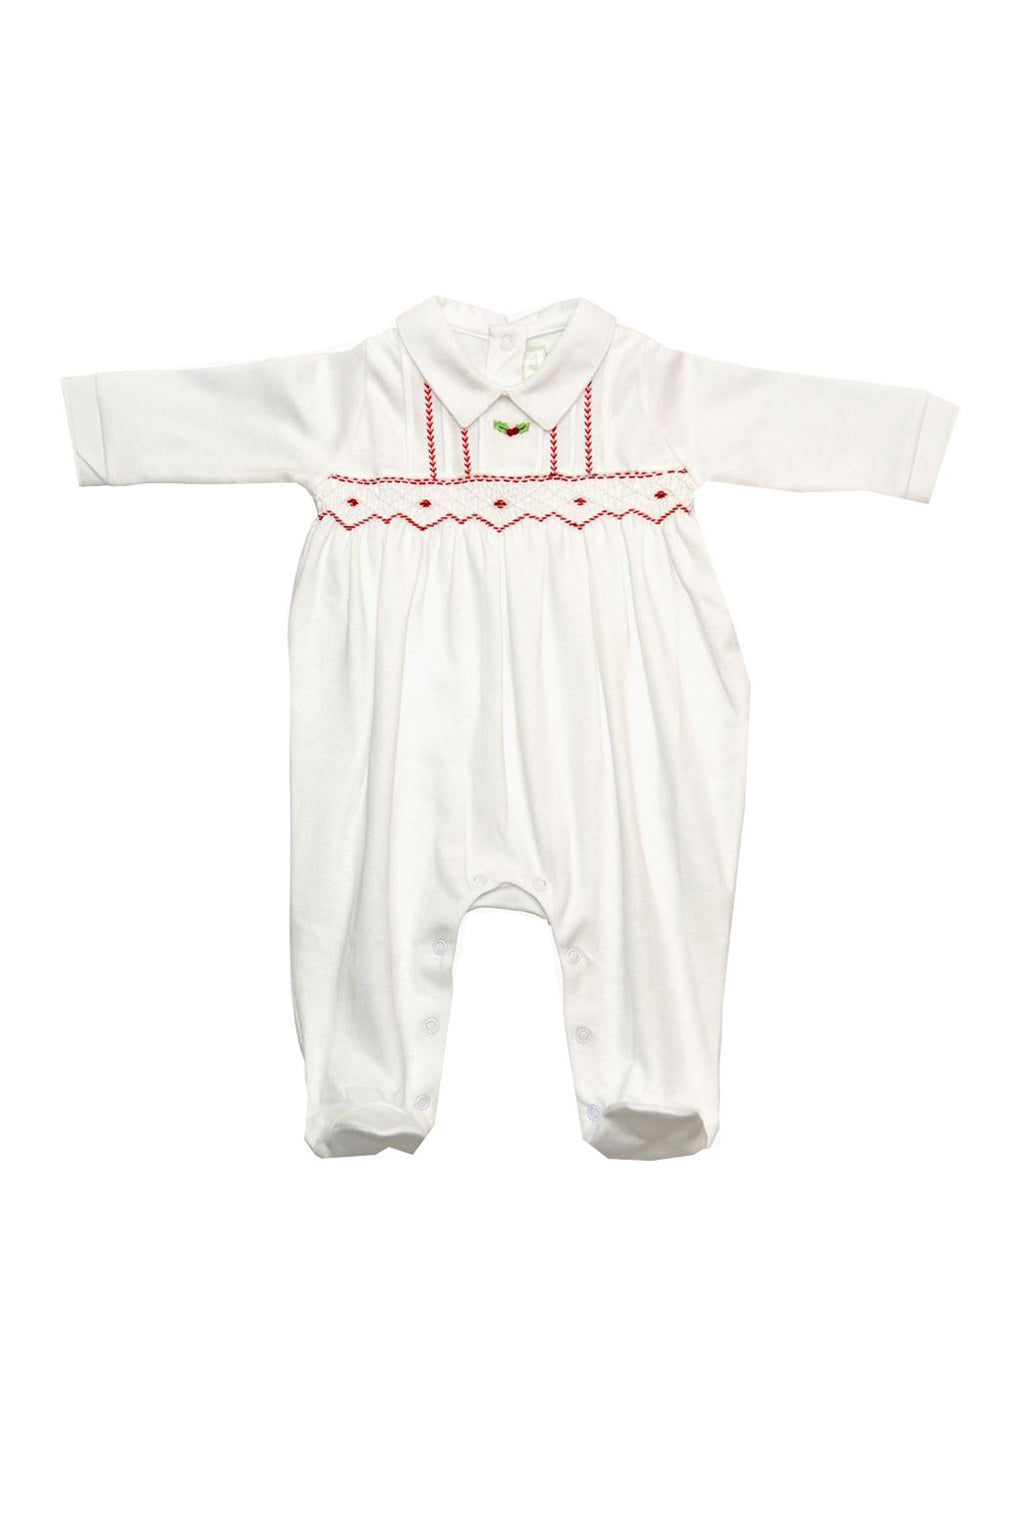 White Christmas Pima cotton baby boy footie - Little Threads Inc. Children's Clothing